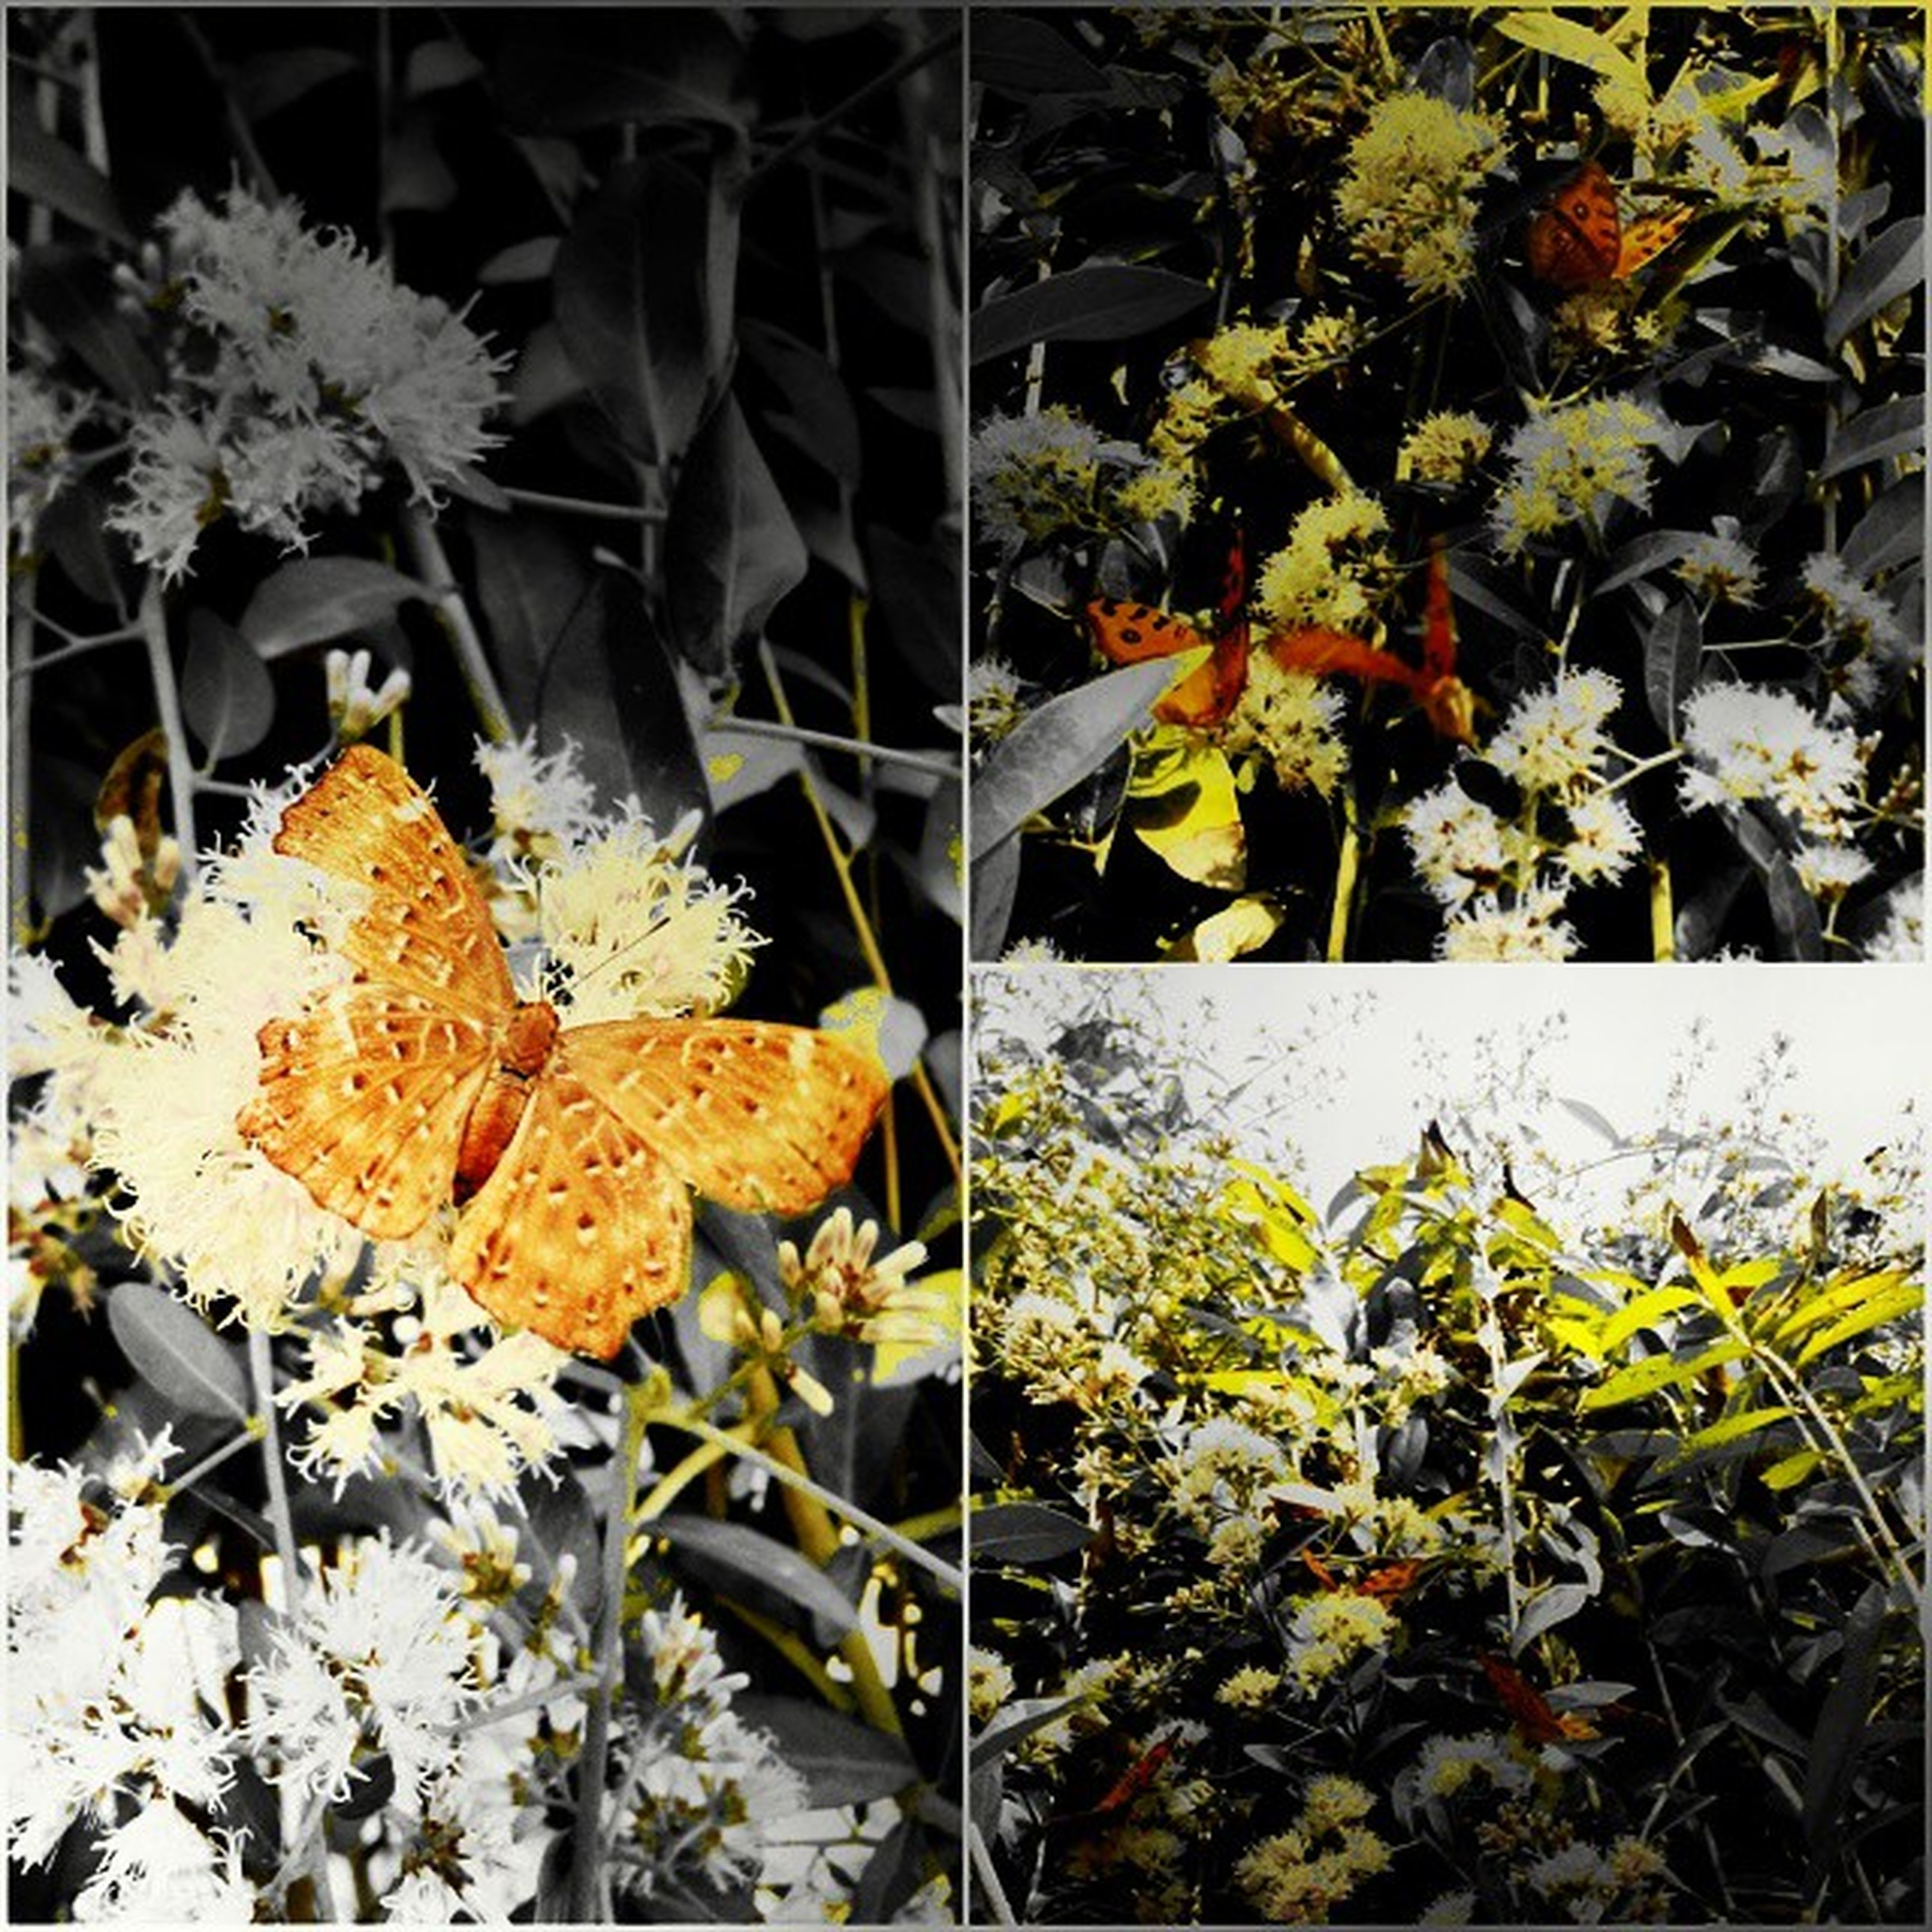 plant, leaf, growth, flower, fragility, nature, season, yellow, beauty in nature, autumn, freshness, change, outdoors, day, close-up, sunlight, blooming, dry, fence, front or back yard